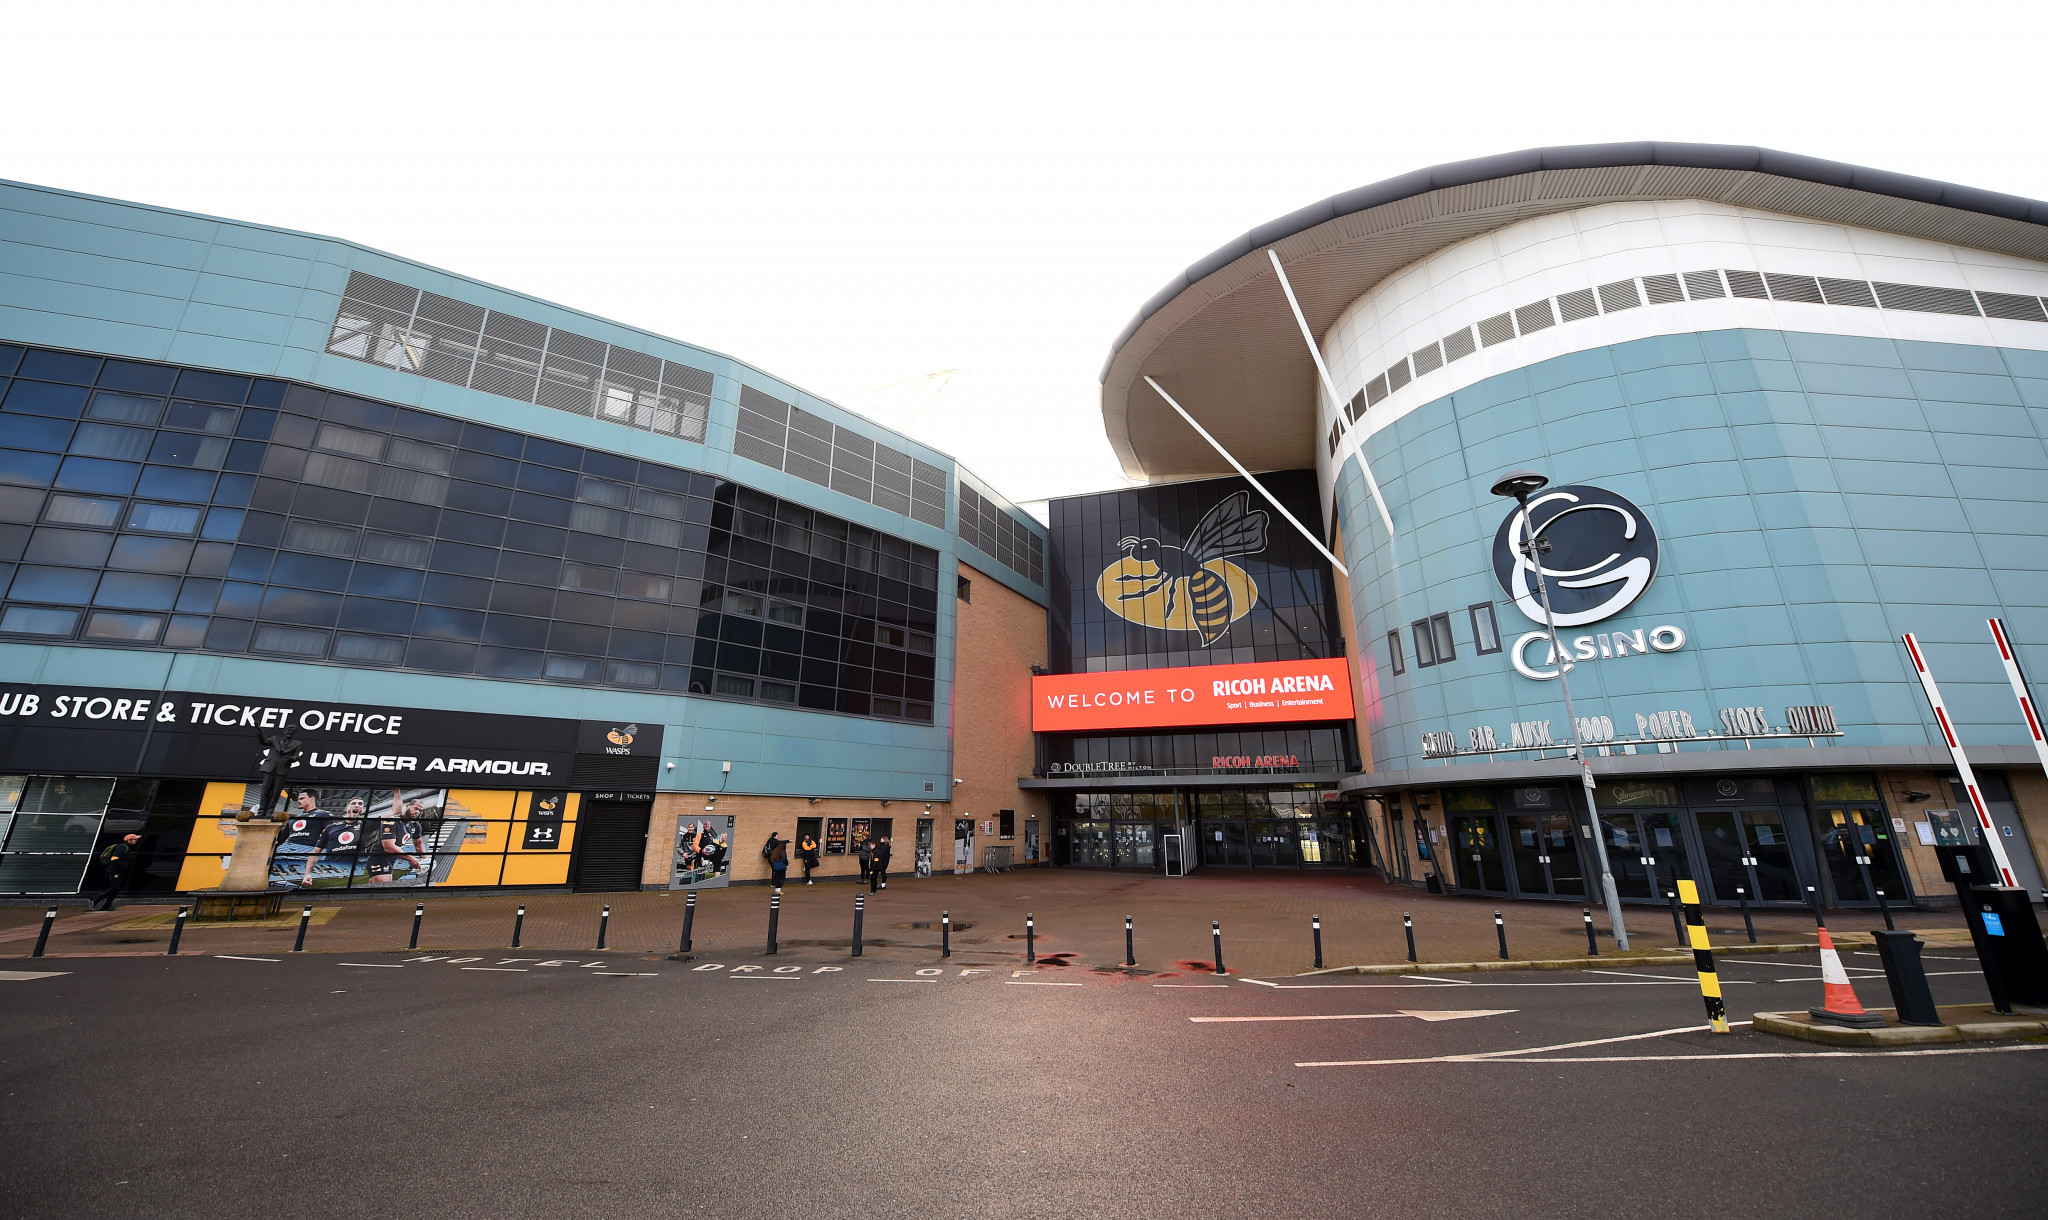 Work begins on convention centre upgrades at Ricoh Arena ahead of Birmingham 2022